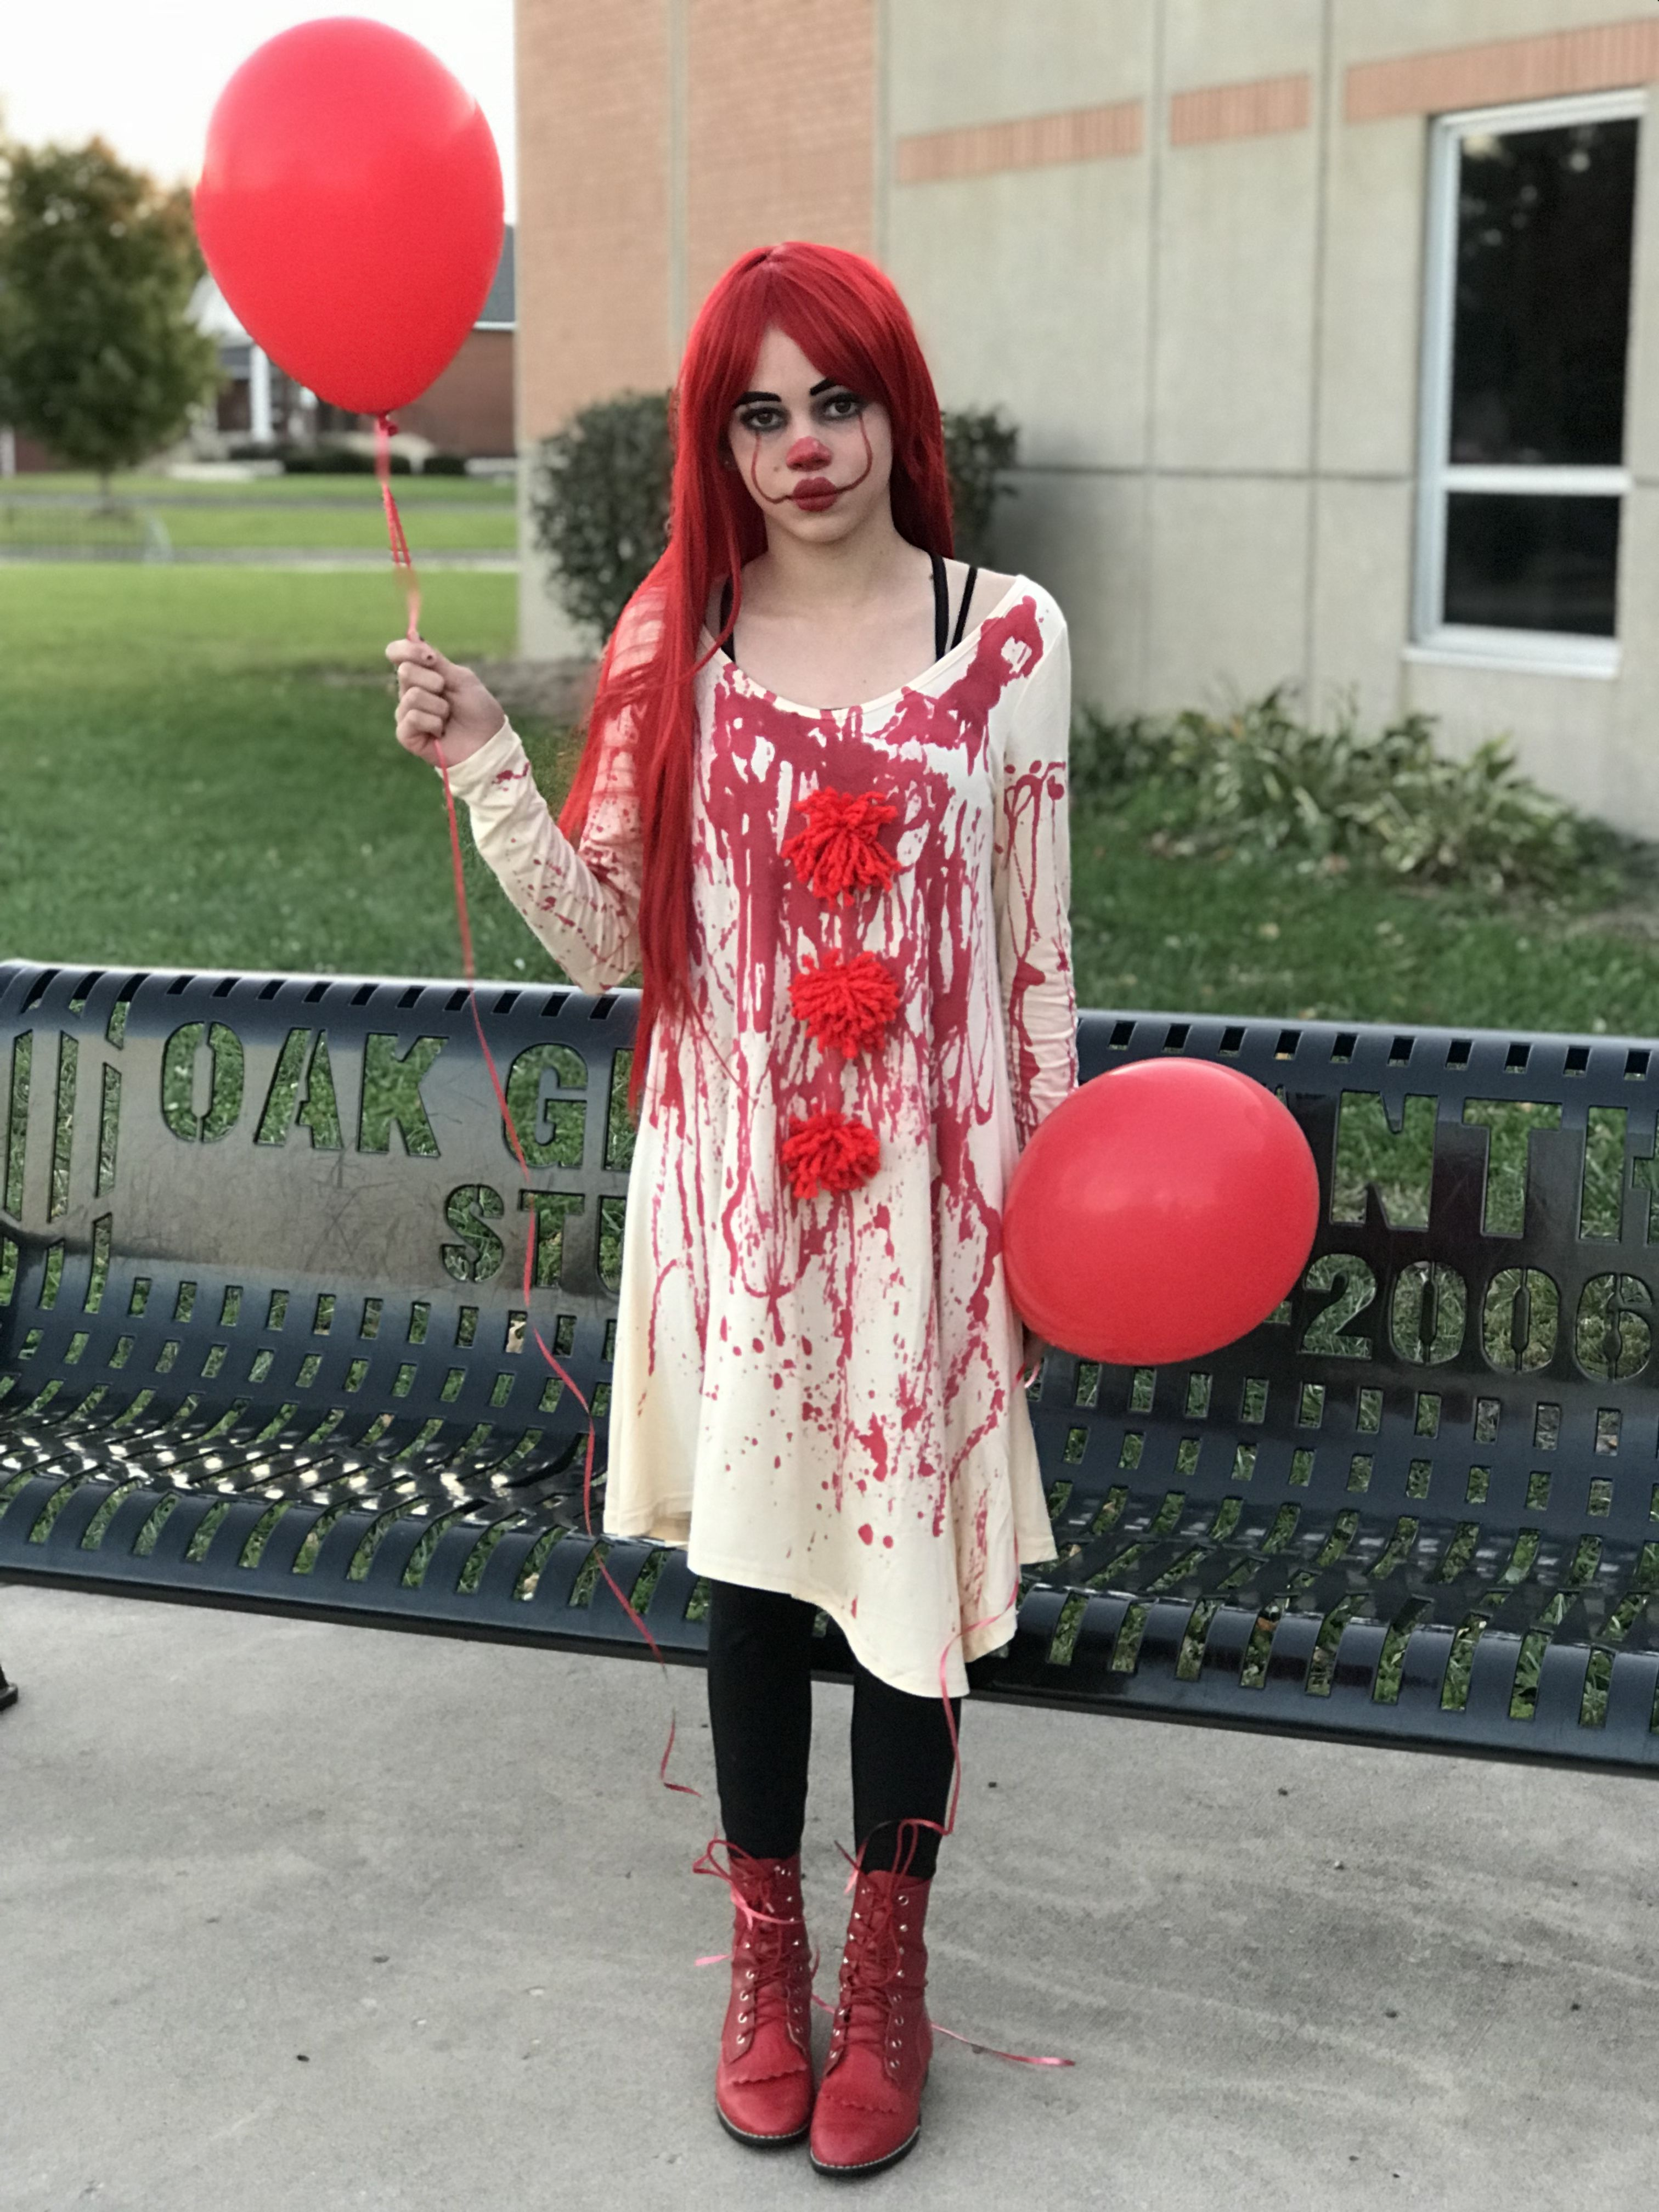 Pennywise Costume Pennywise halloween costume, Clown